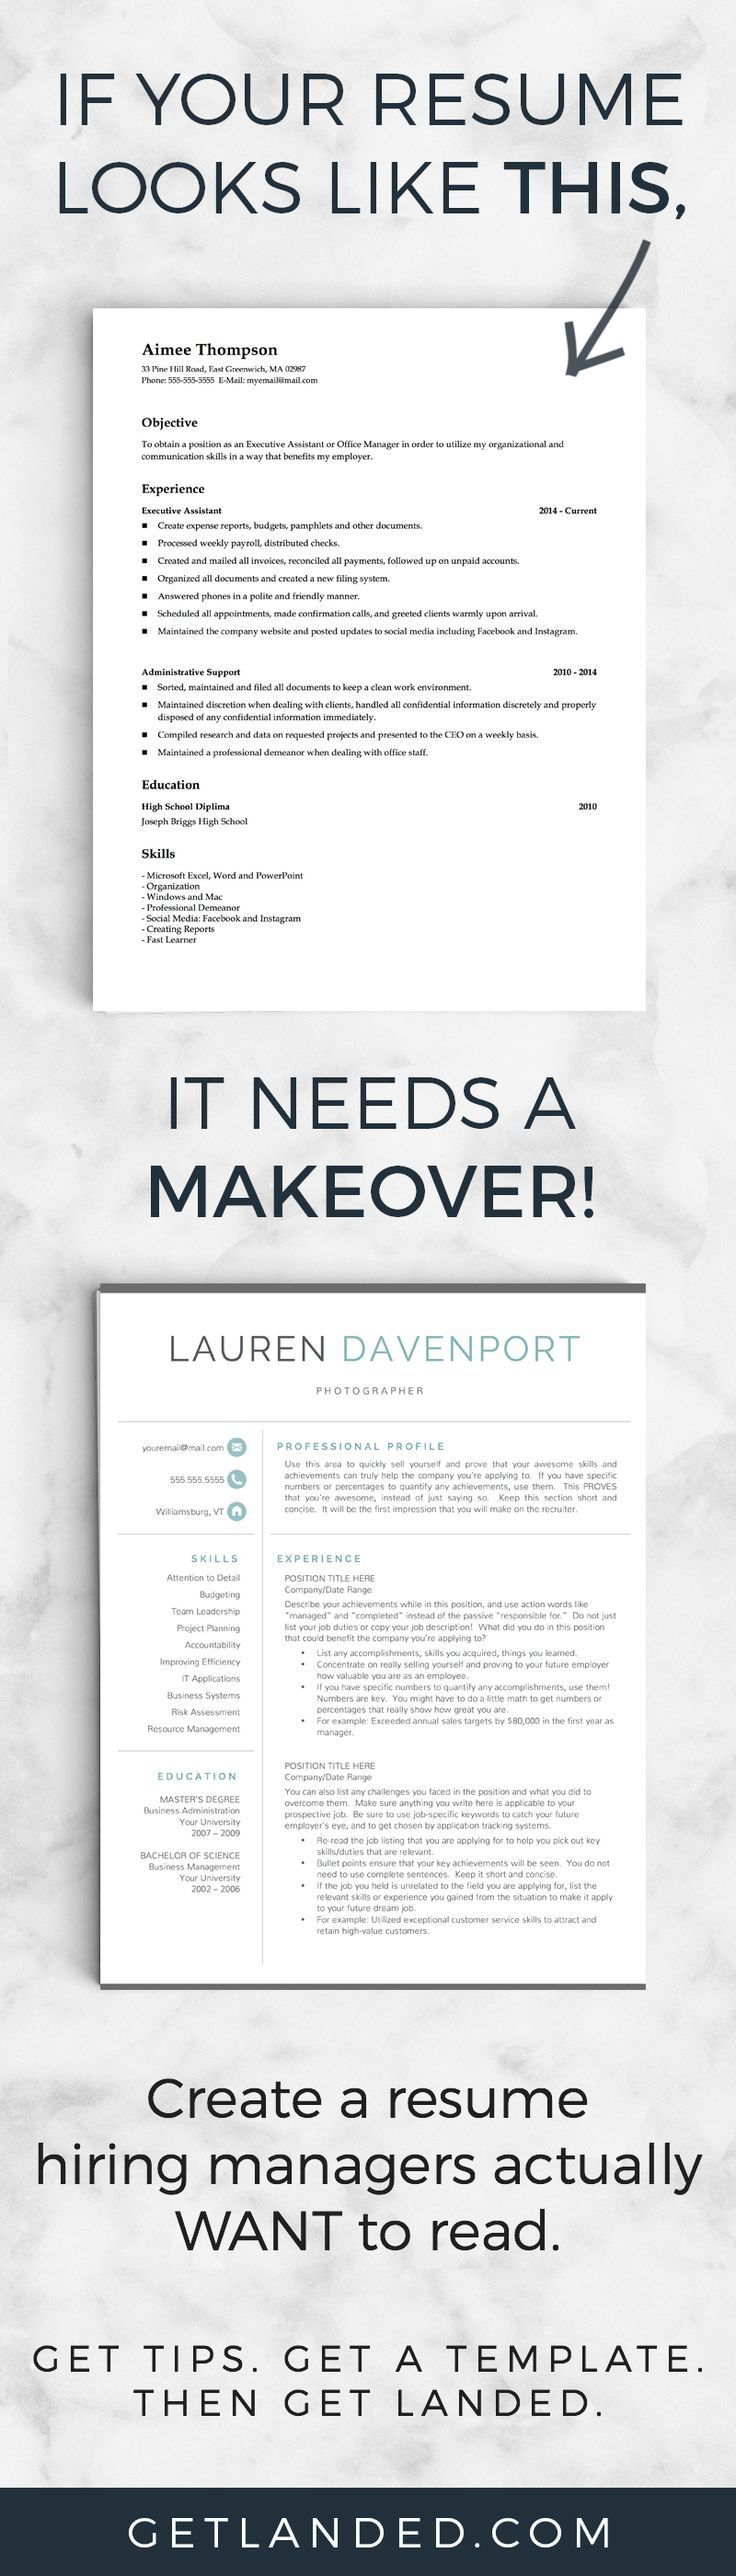 80% of candidates desperately need a resume makeover! Get a resume makeover today with a resume template and resume… http://itz-my.com